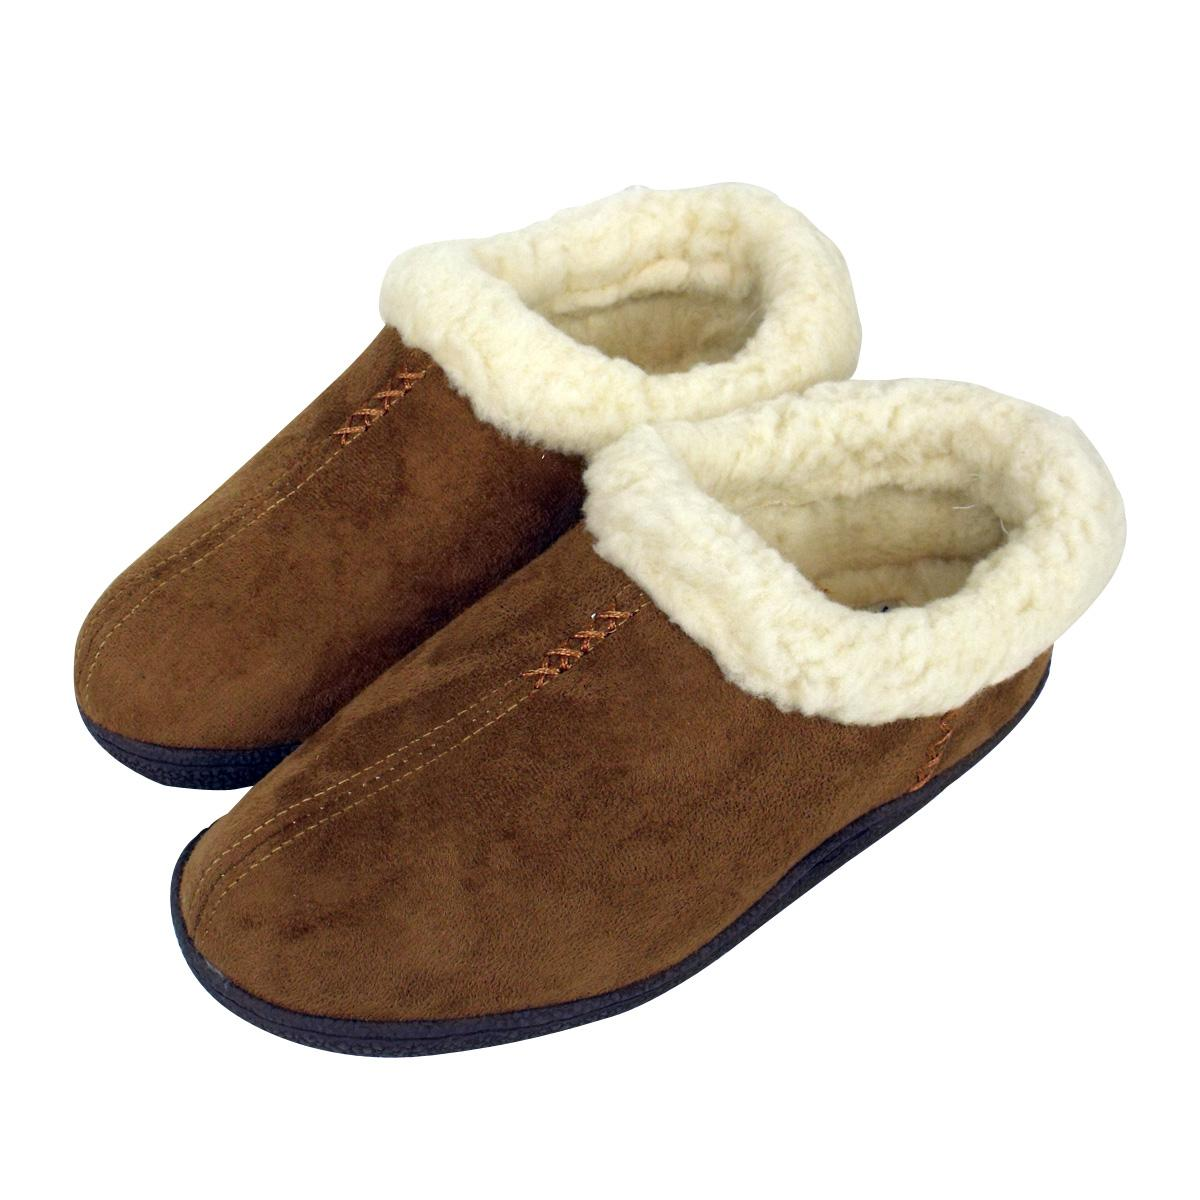 Slippers for Women. Cover your feet in style with women's slippers from Kohl's. No matter which style of women's footwear you prefer, we have them all! Our selection of women's ballet slippers will keep your feet comfortable all day long. We have all the most popular brands.